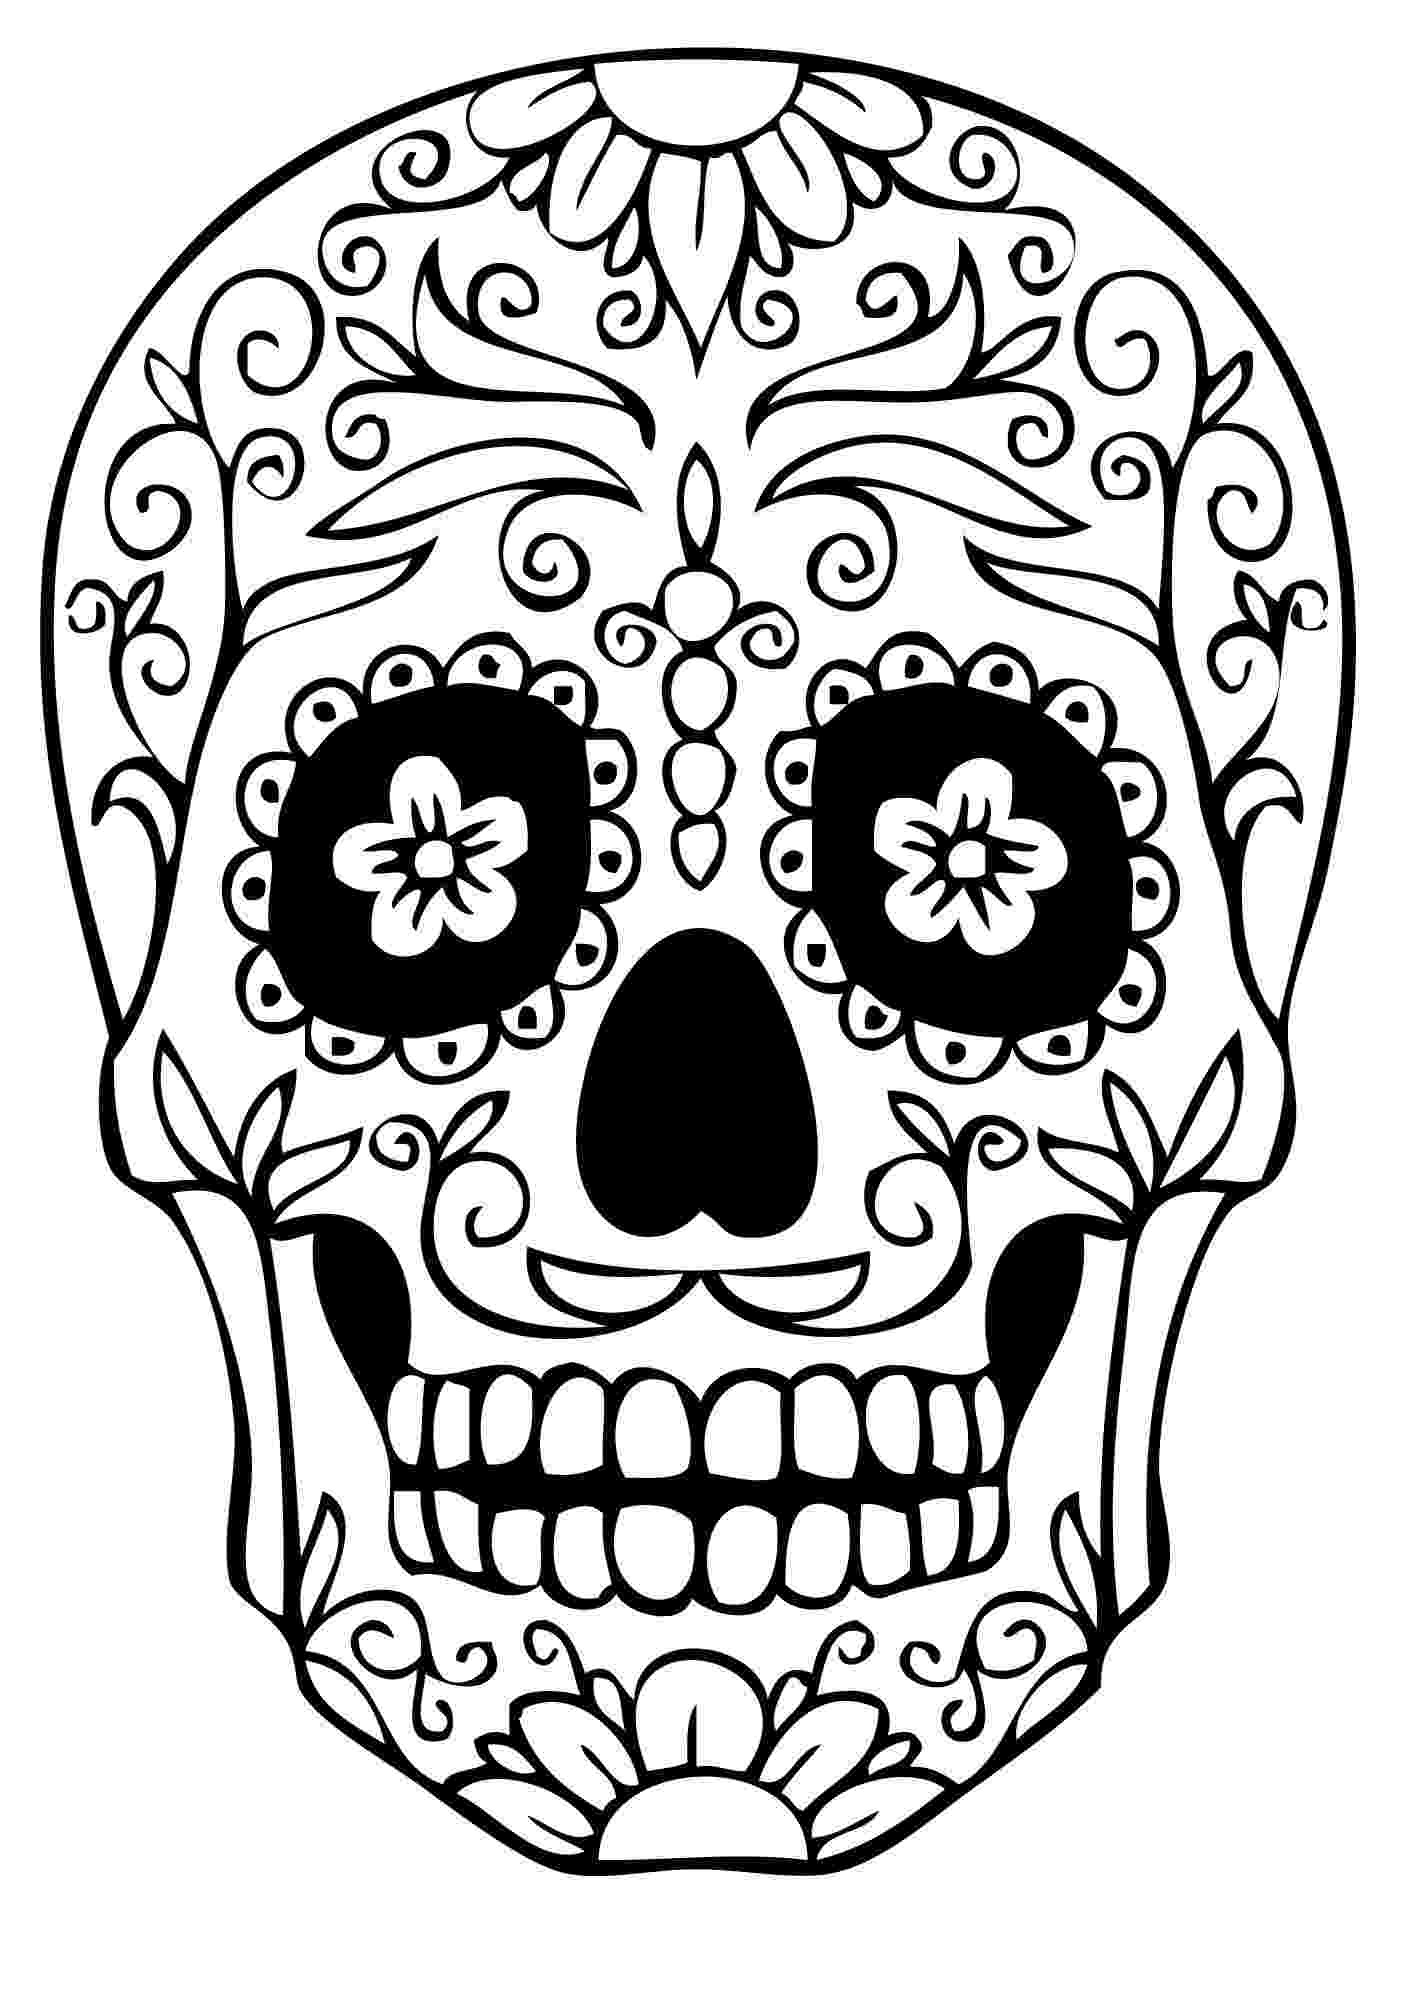 sugar skulls pictures sugar skull coloring pages best coloring pages for kids pictures skulls sugar